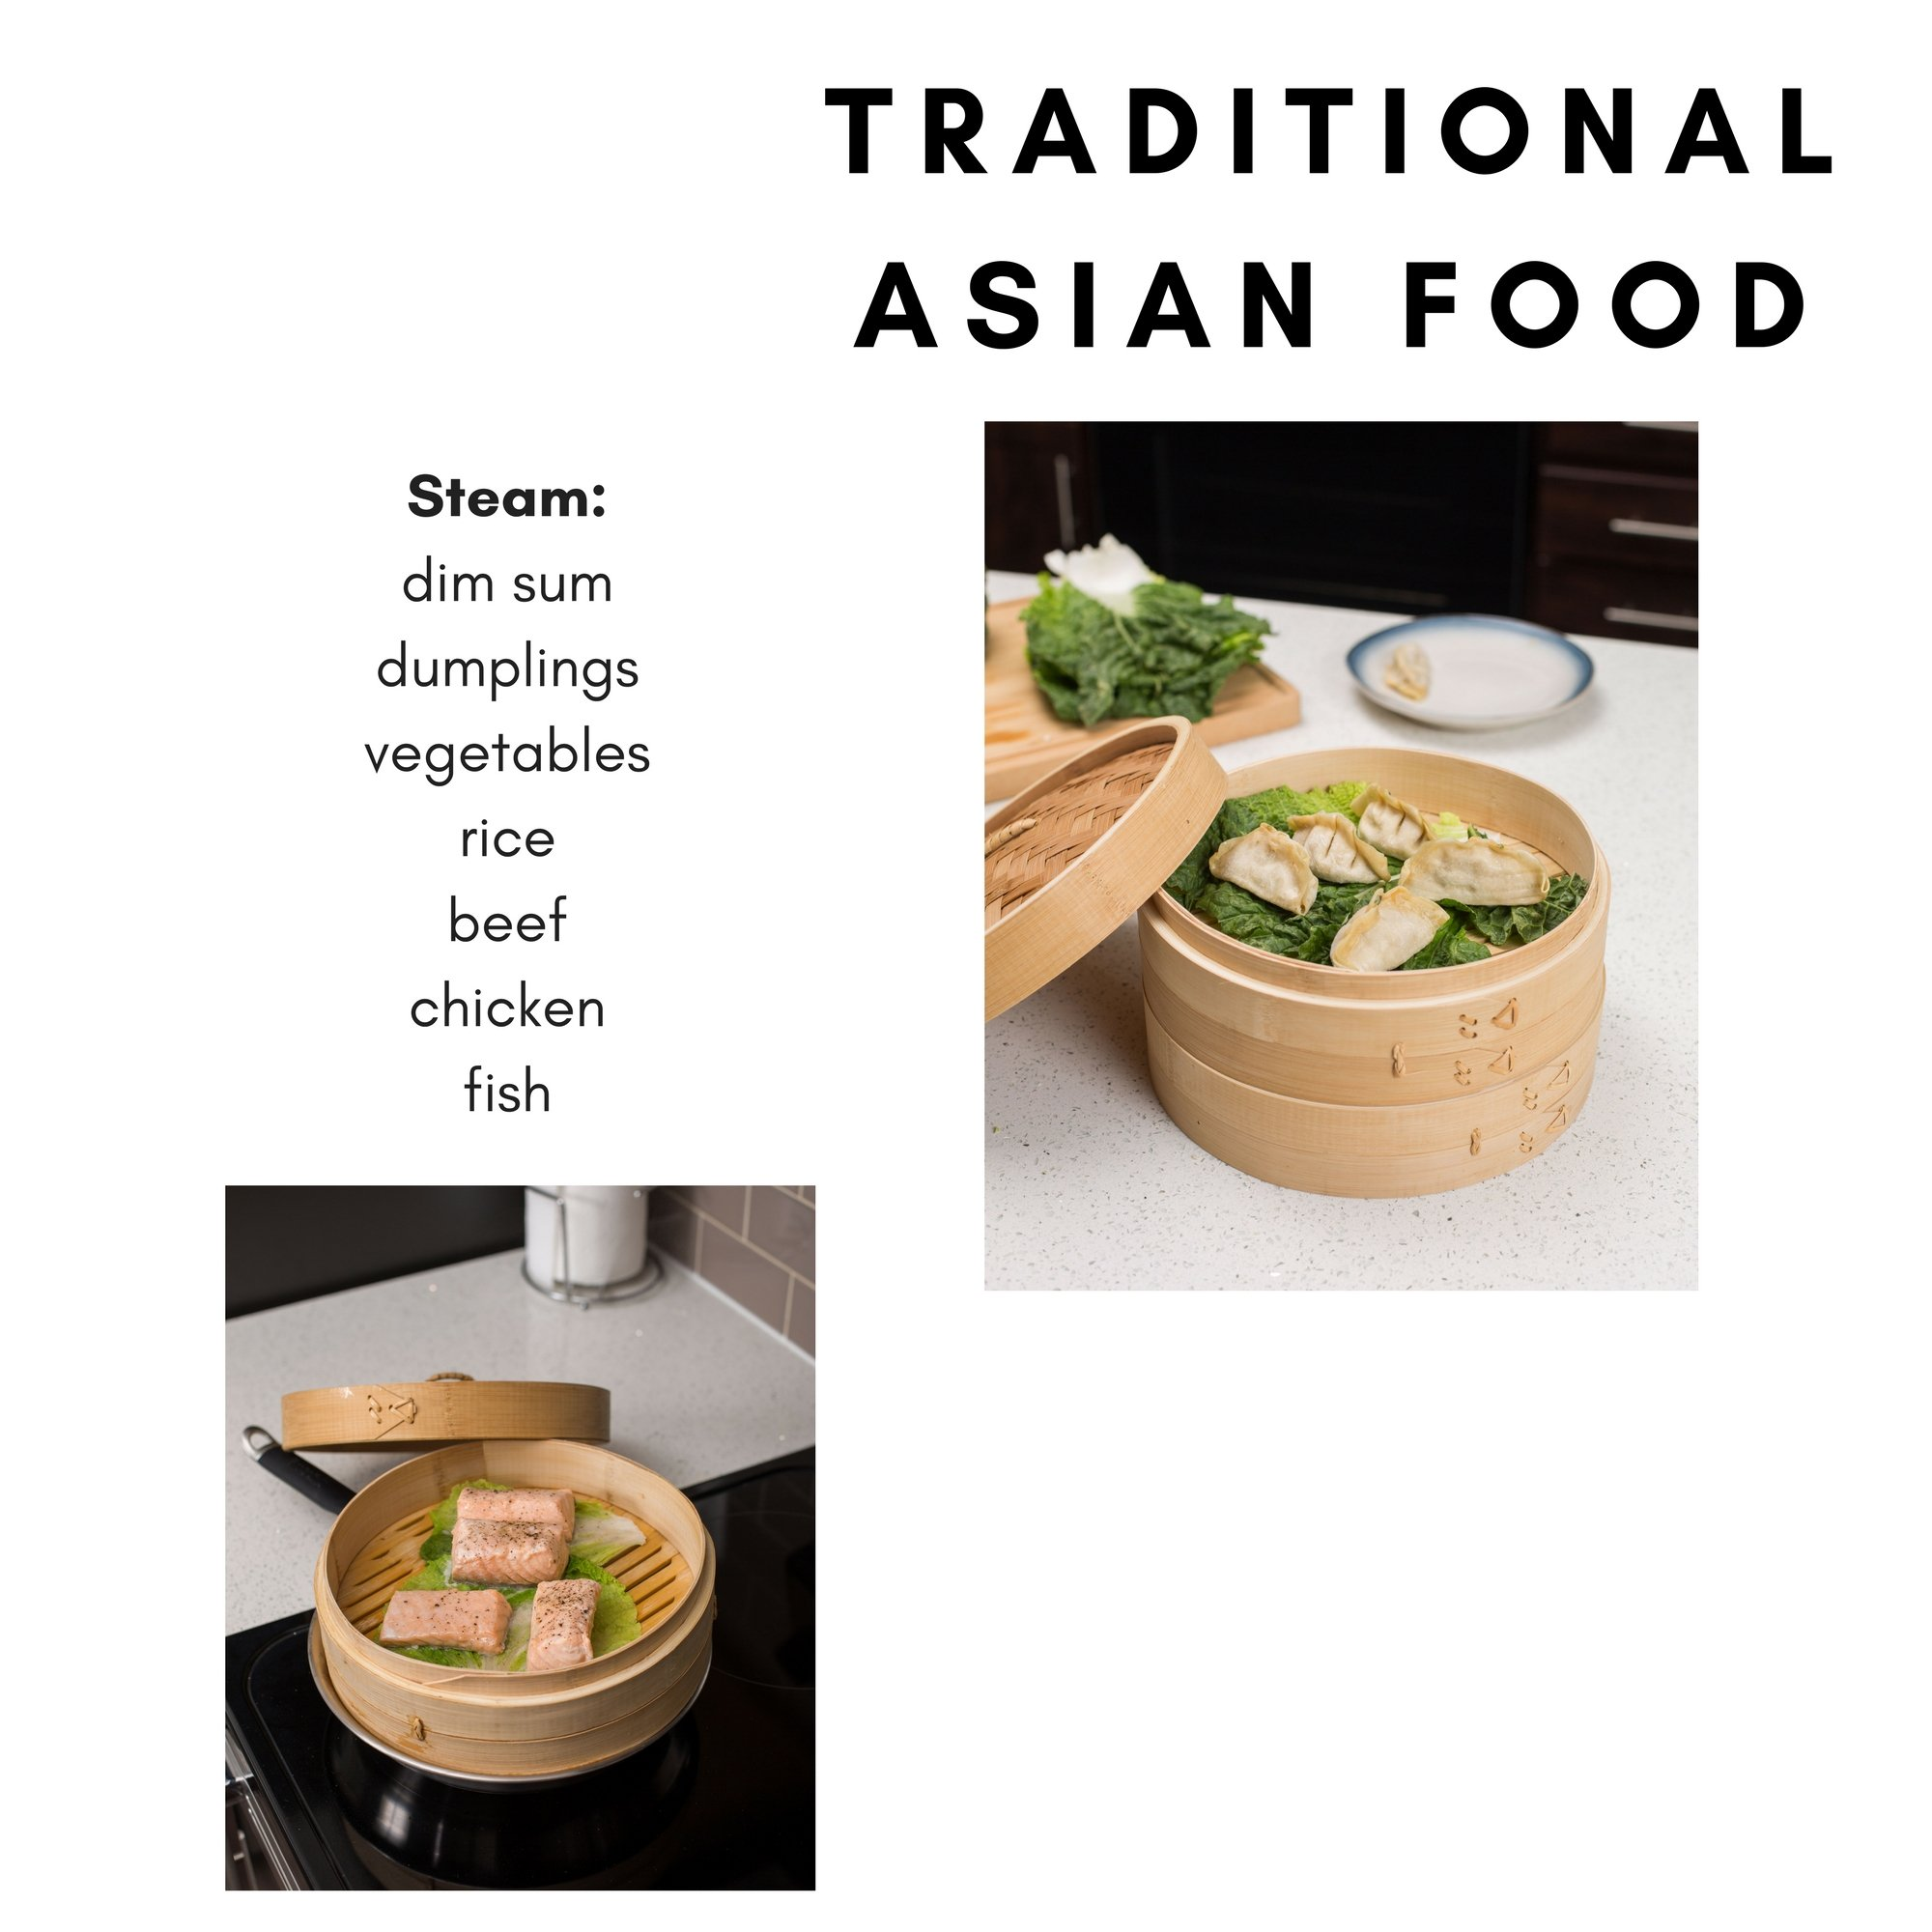 BirdRock Home 10 Inch Bamboo Steamer | Classic Traditional Design | Healthy Cooking | Great for dumplings, vegetables, chicken, fish | Steam Basket | Natural by BirdRock Home (Image #5)